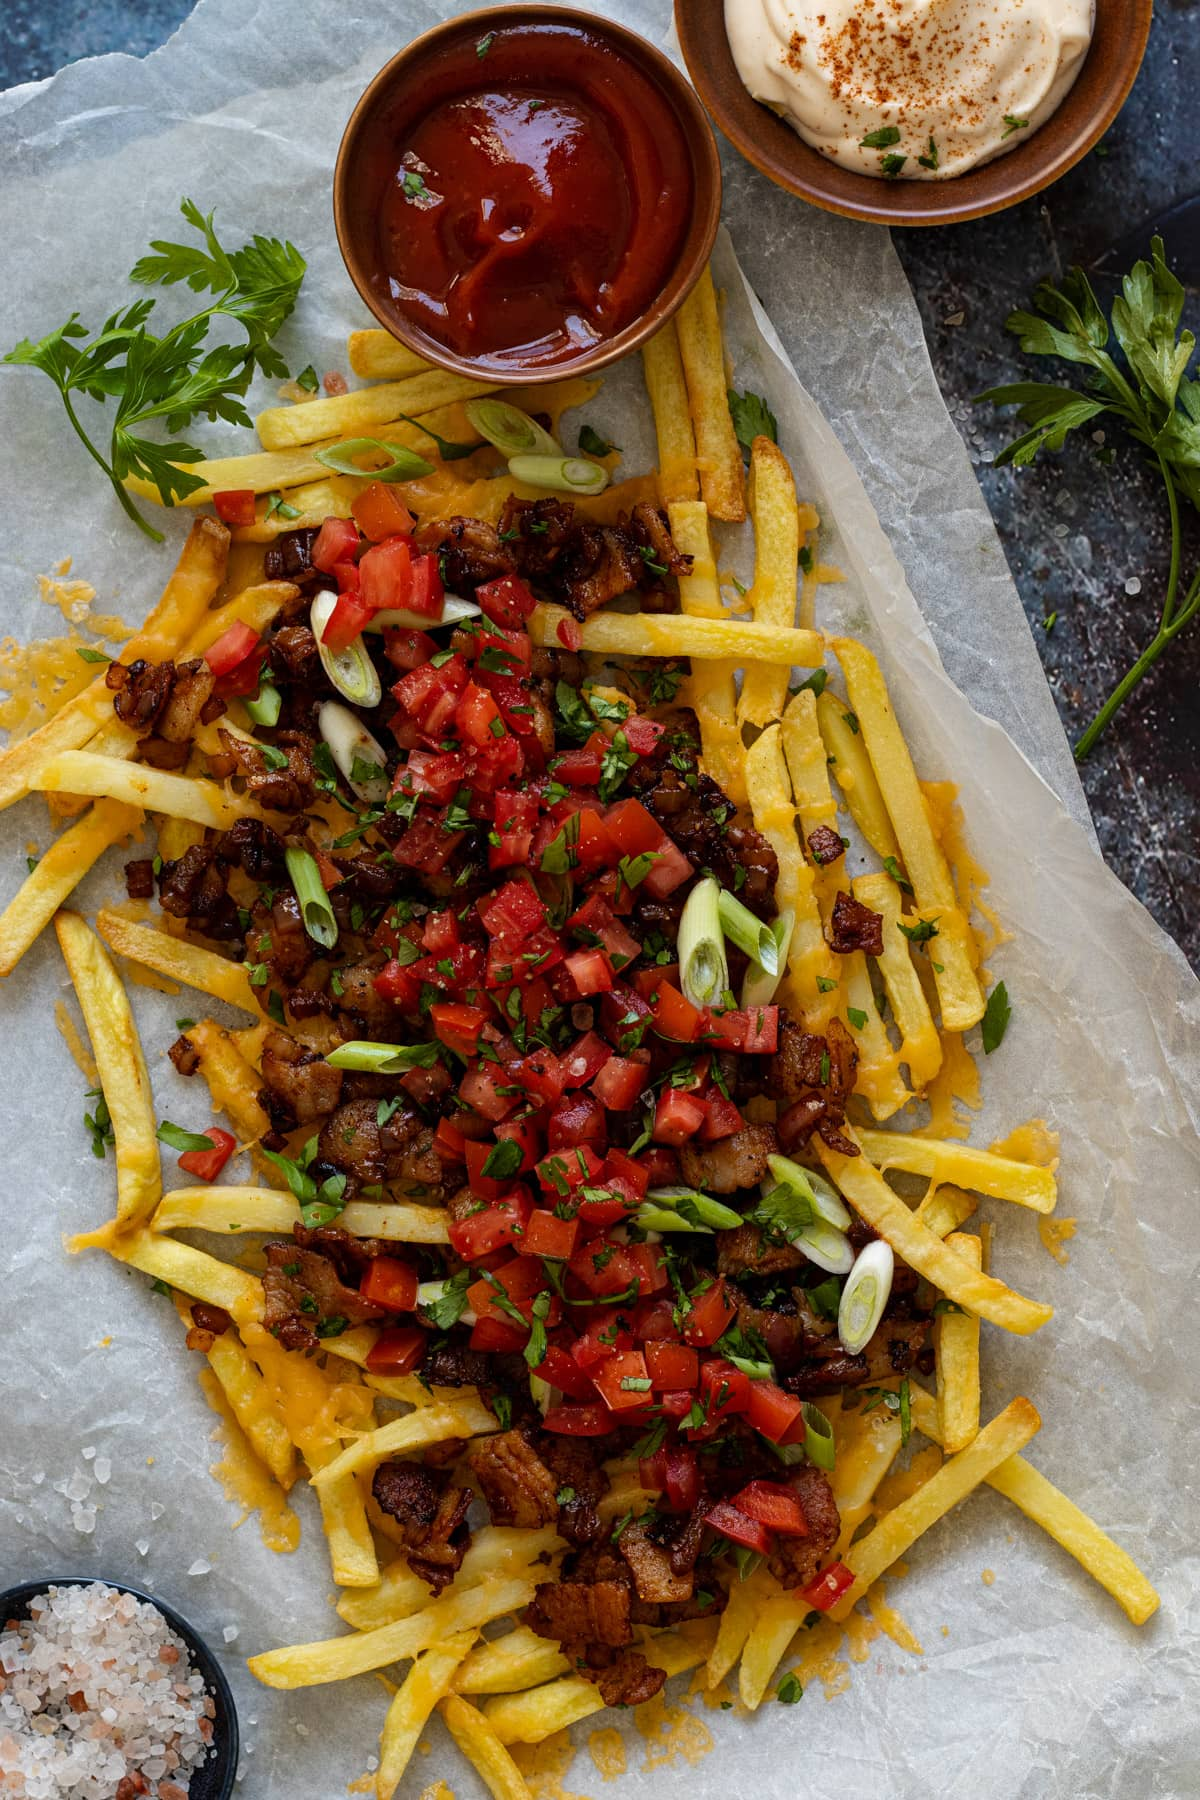 Dirty fries on paper with ketchup